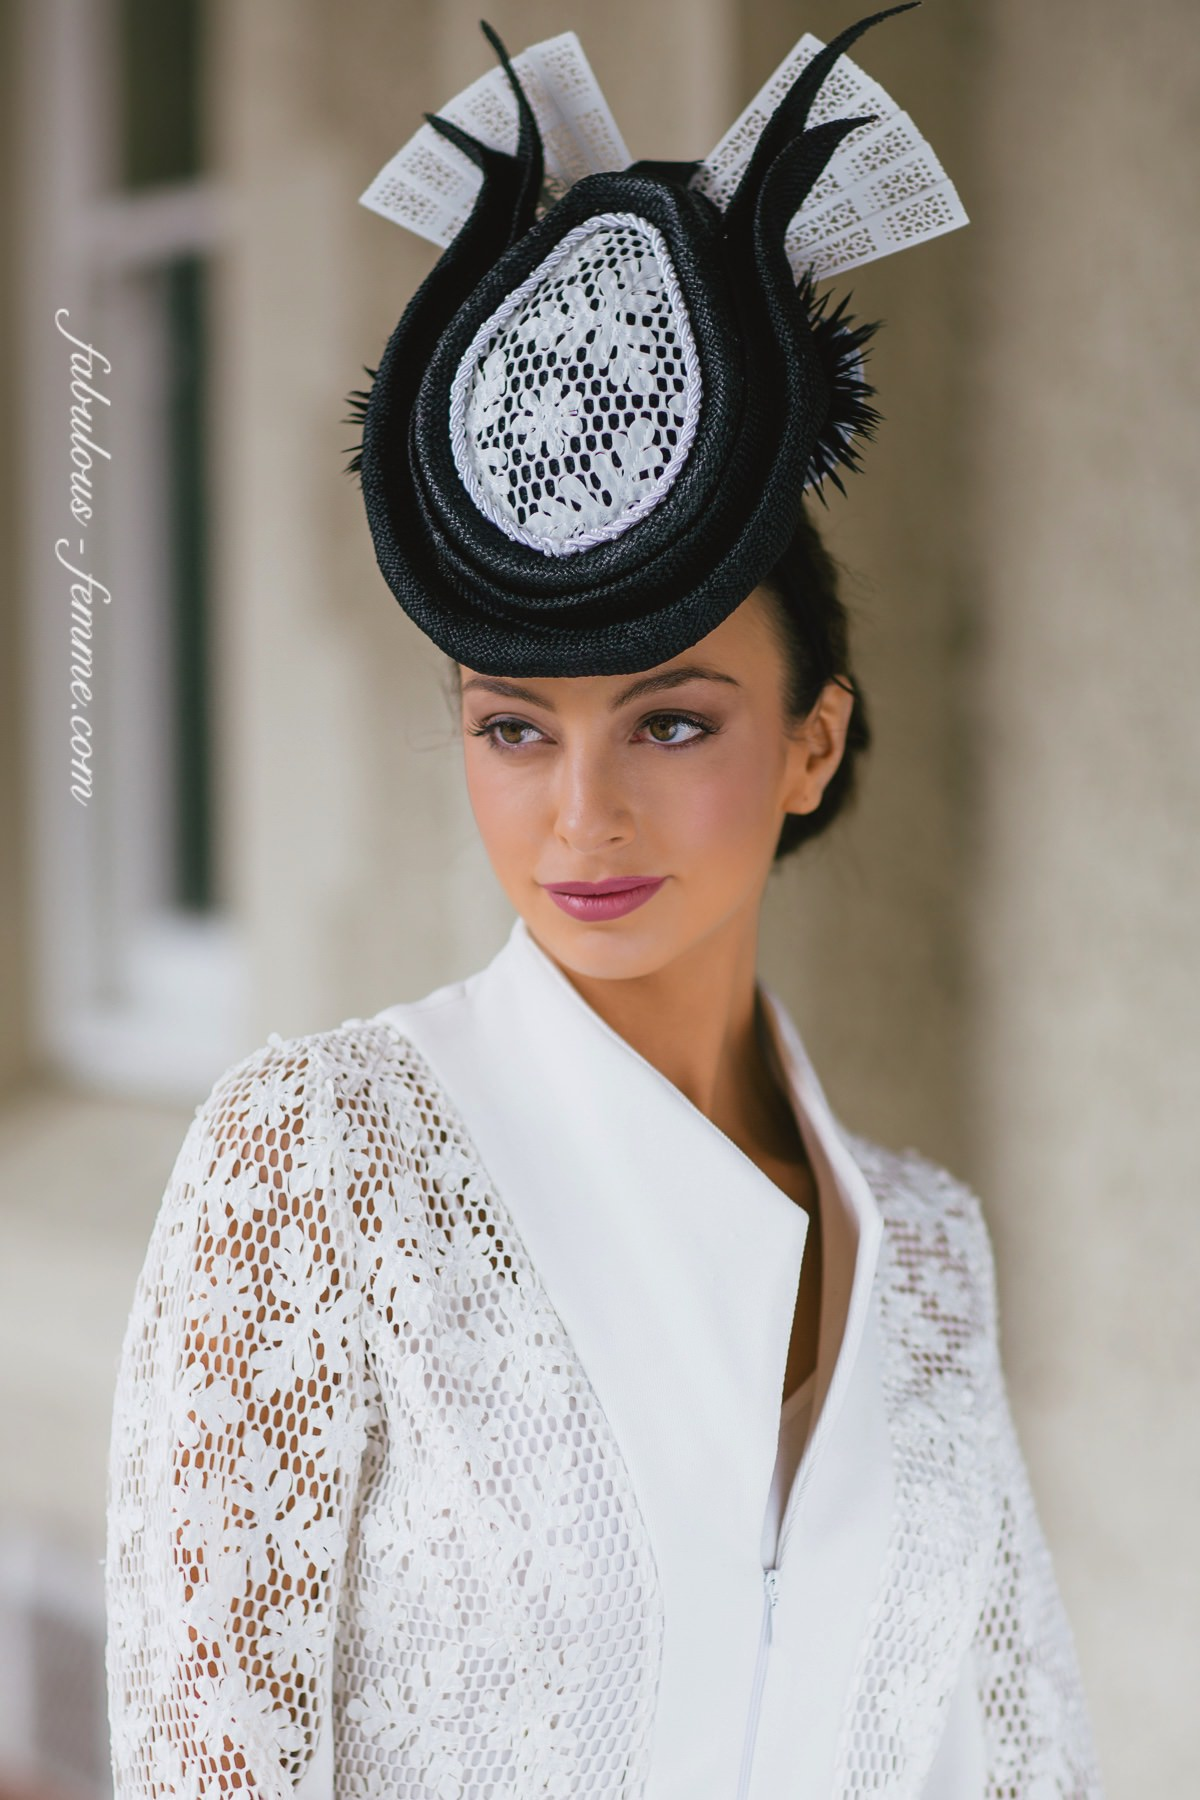 best hats 2015 for the melbourne spring racing - derby day outfit by Alannah Hill and LisaAlexanderDesign Milliner